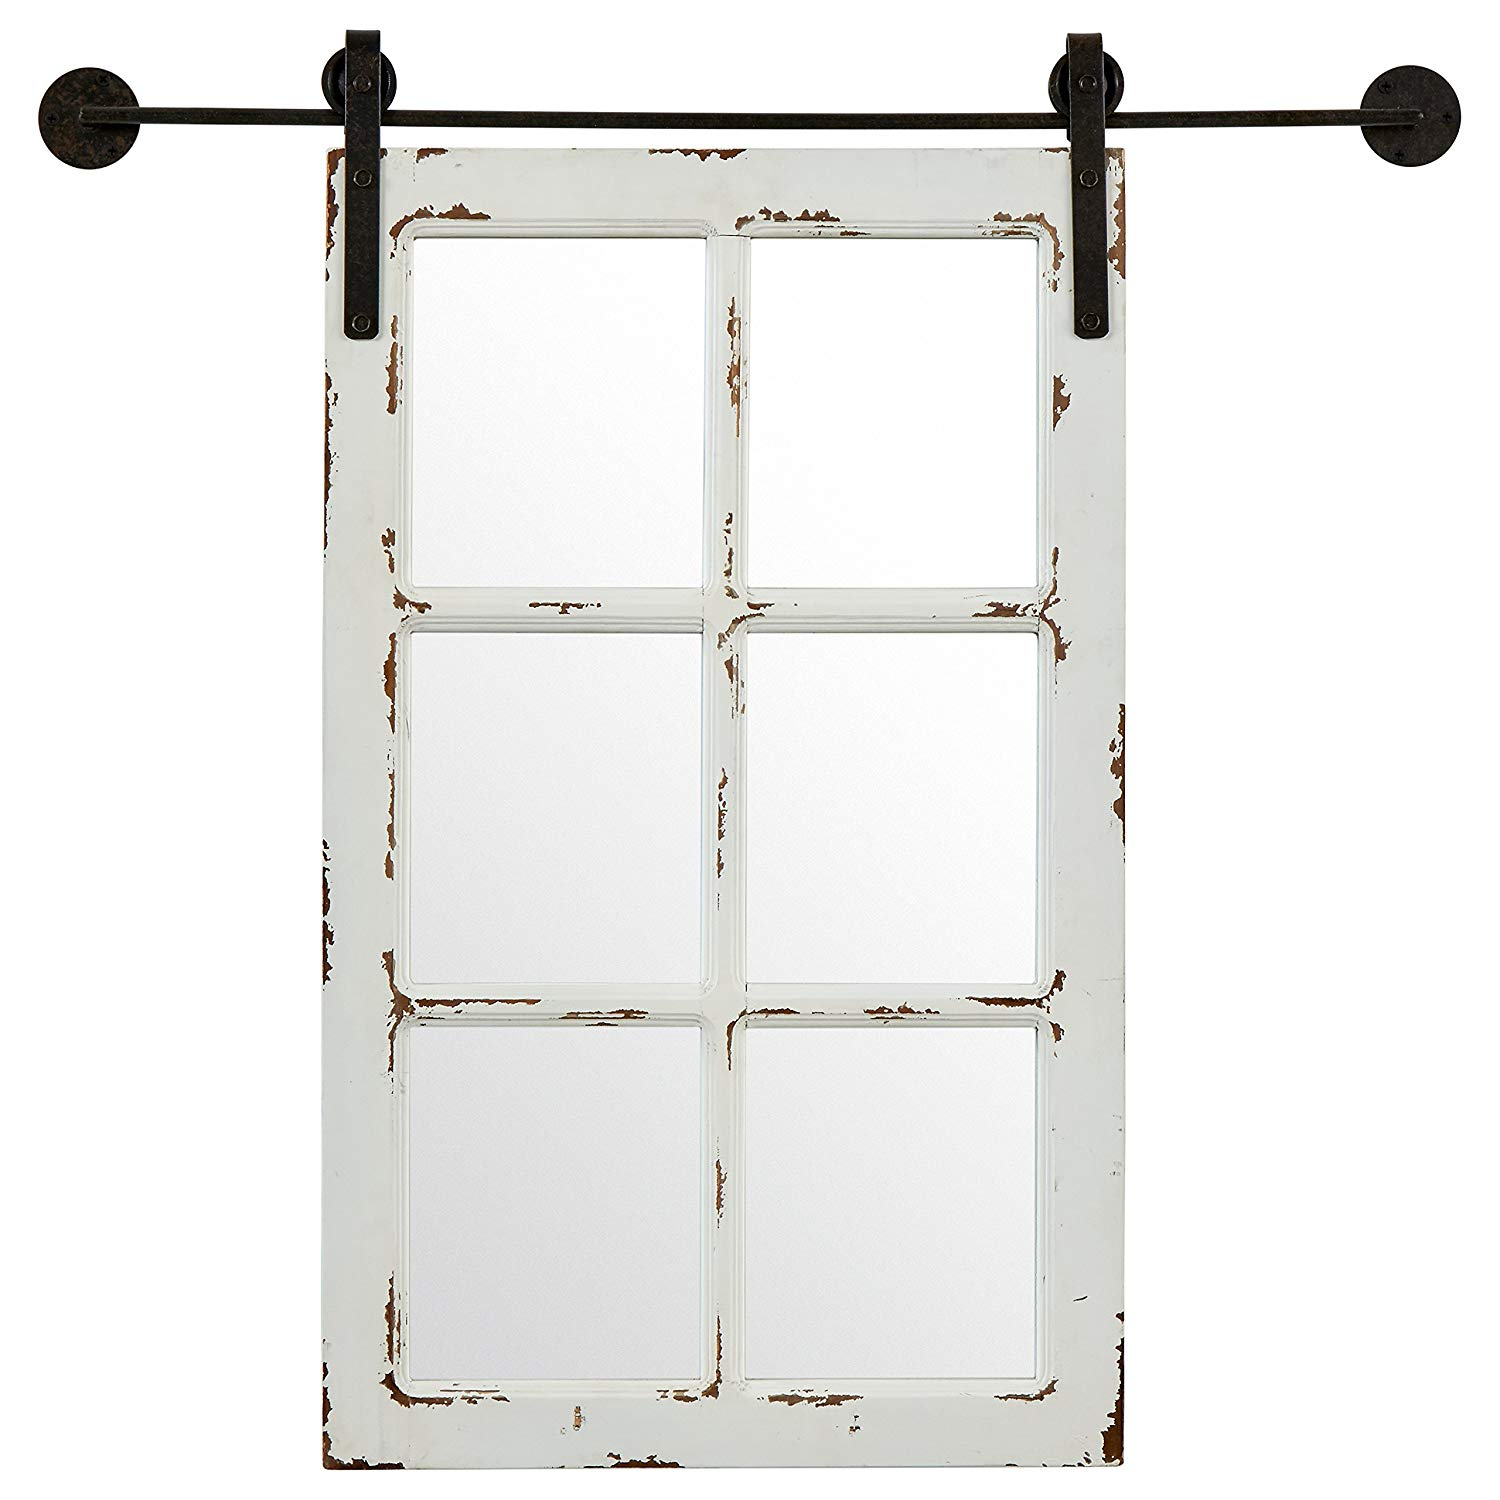 This Stone & Beam Vintage-Look Rectangular Frame White Window Wood Mirror would be the perfect addition to a gallery wall or doubled up to create a focal point on a wall.